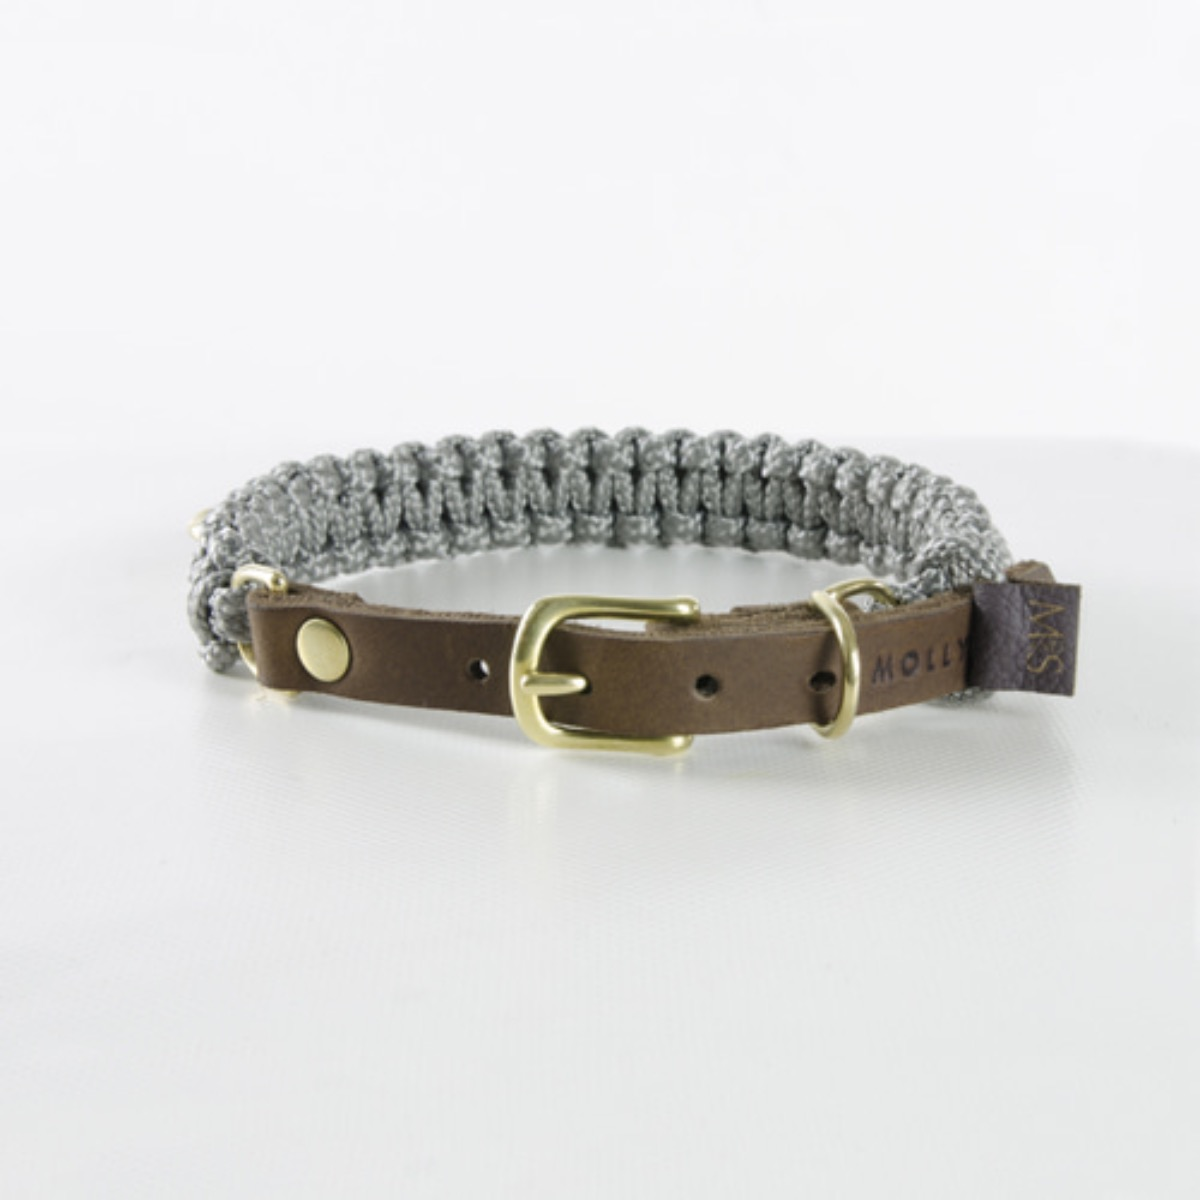 TOUCH OF LEATHER Collar GREY